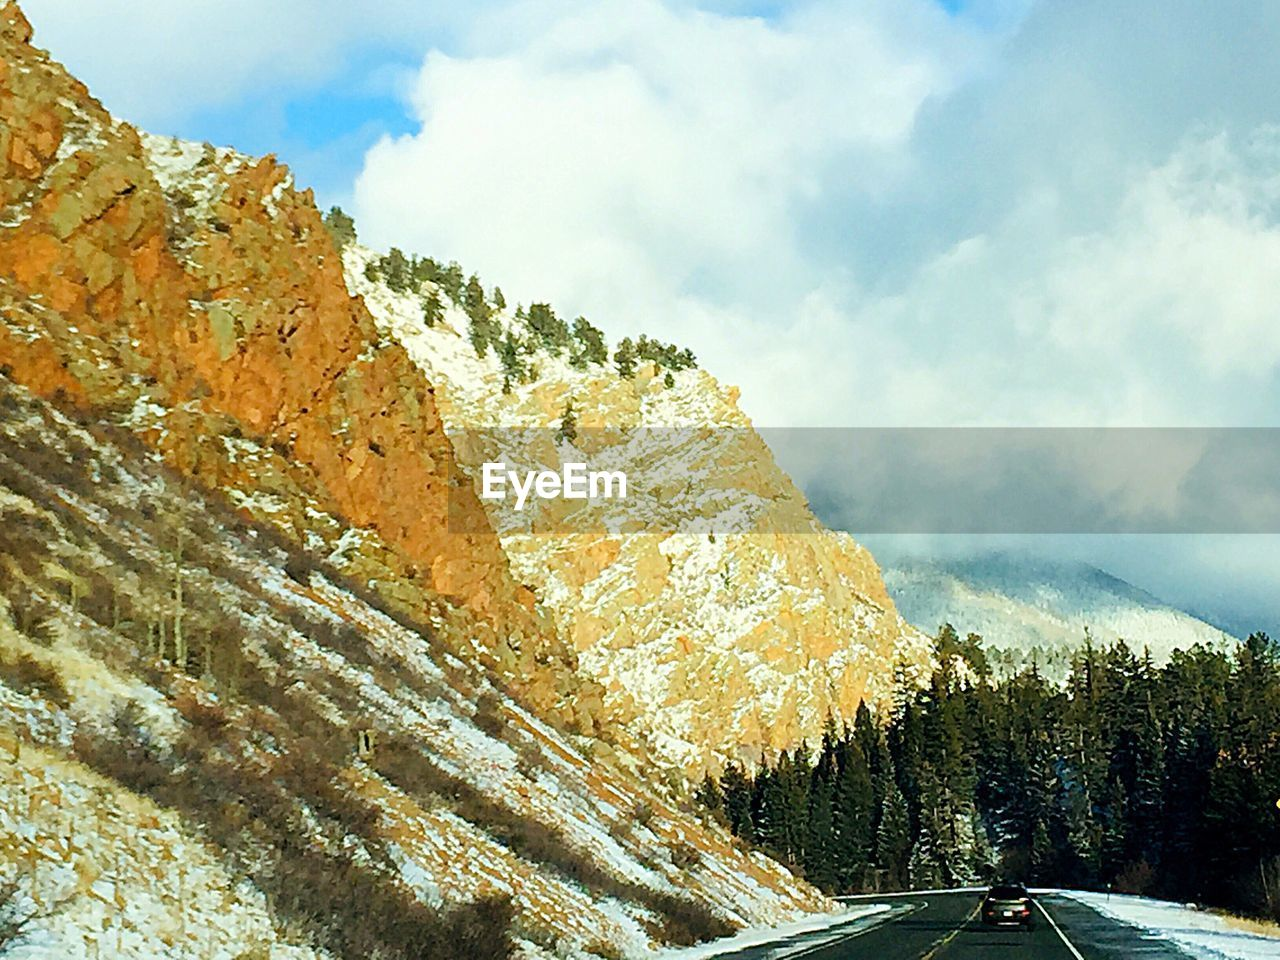 sky, cloud - sky, mountain, beauty in nature, tree, nature, plant, scenics - nature, tranquility, day, tranquil scene, non-urban scene, mountain range, transportation, no people, cold temperature, snow, winter, road, mountain road, outdoors, formation, snowcapped mountain